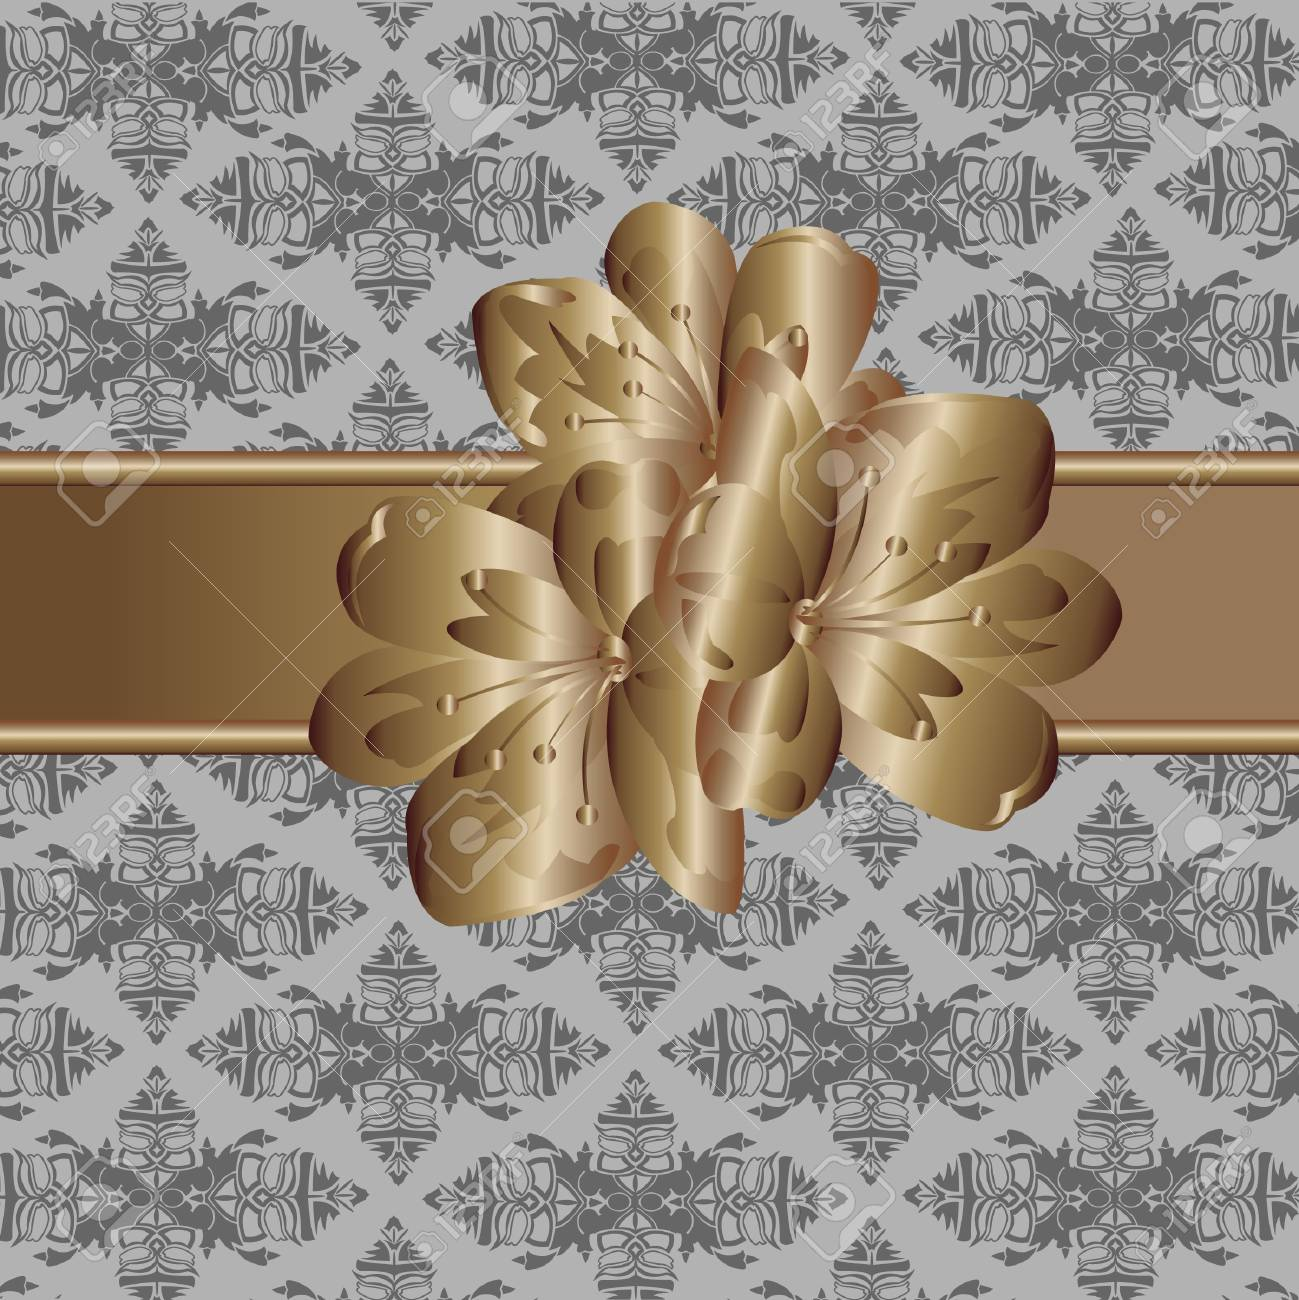 Decorative Wallpaper And Metallic Flower Royalty Free Cliparts